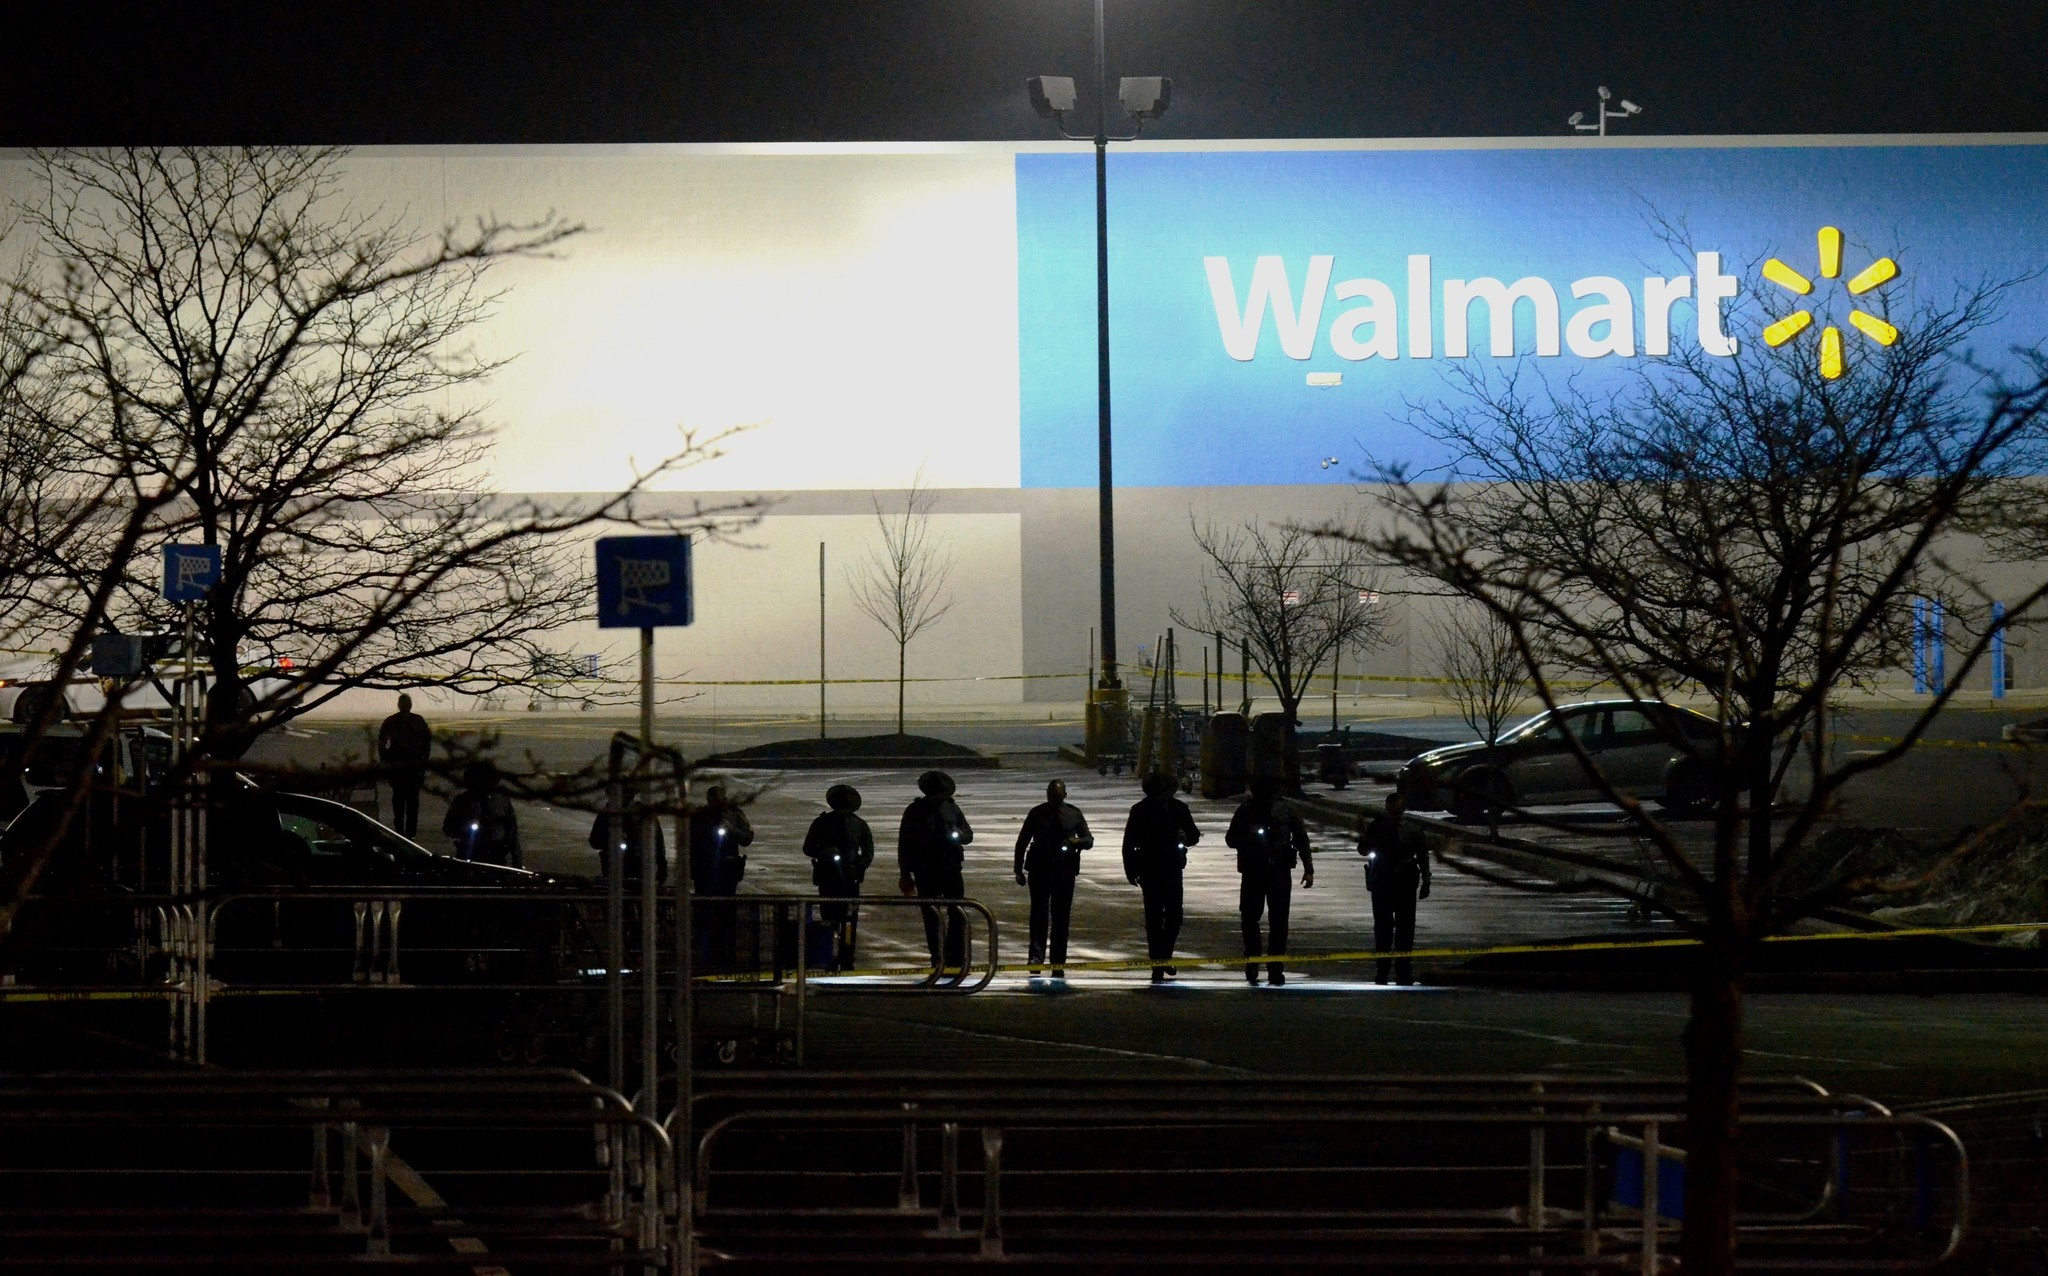 Man dead after 'officer-involved shooting' outside Walmart